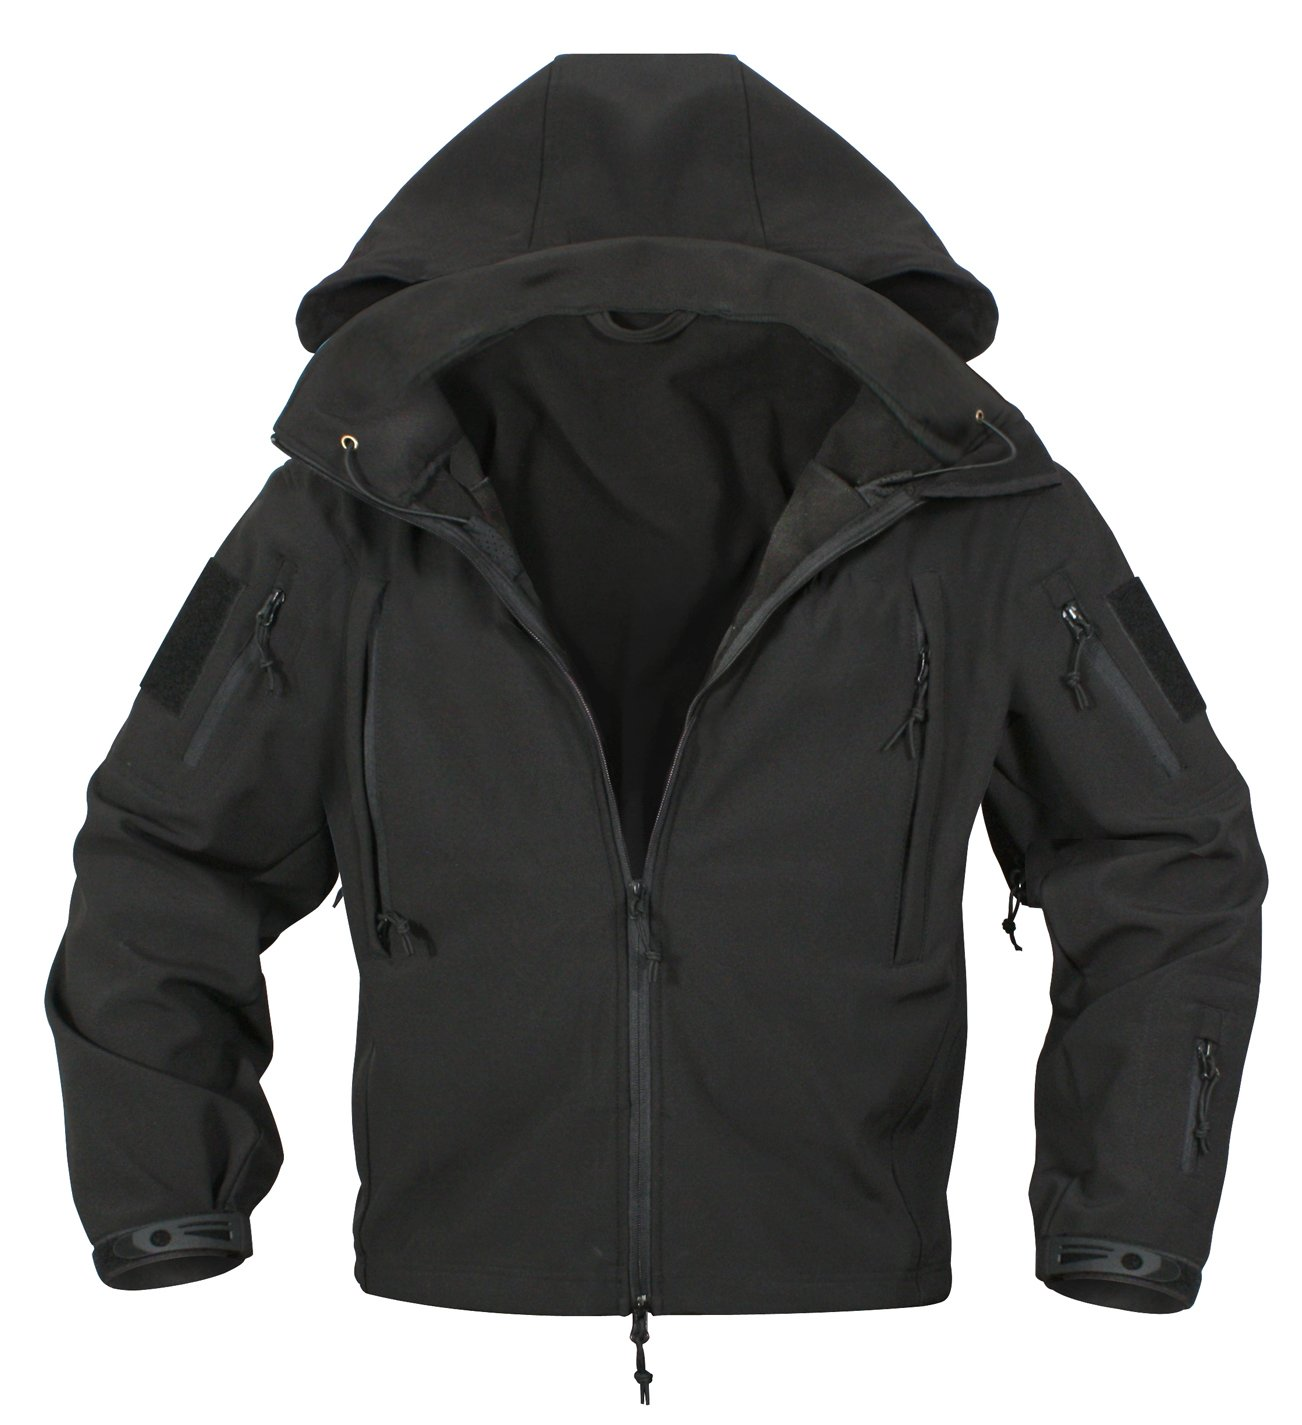 Rothco Special Ops Softshell Jacket, Black, 3X-Large by Rothco (Image #4)